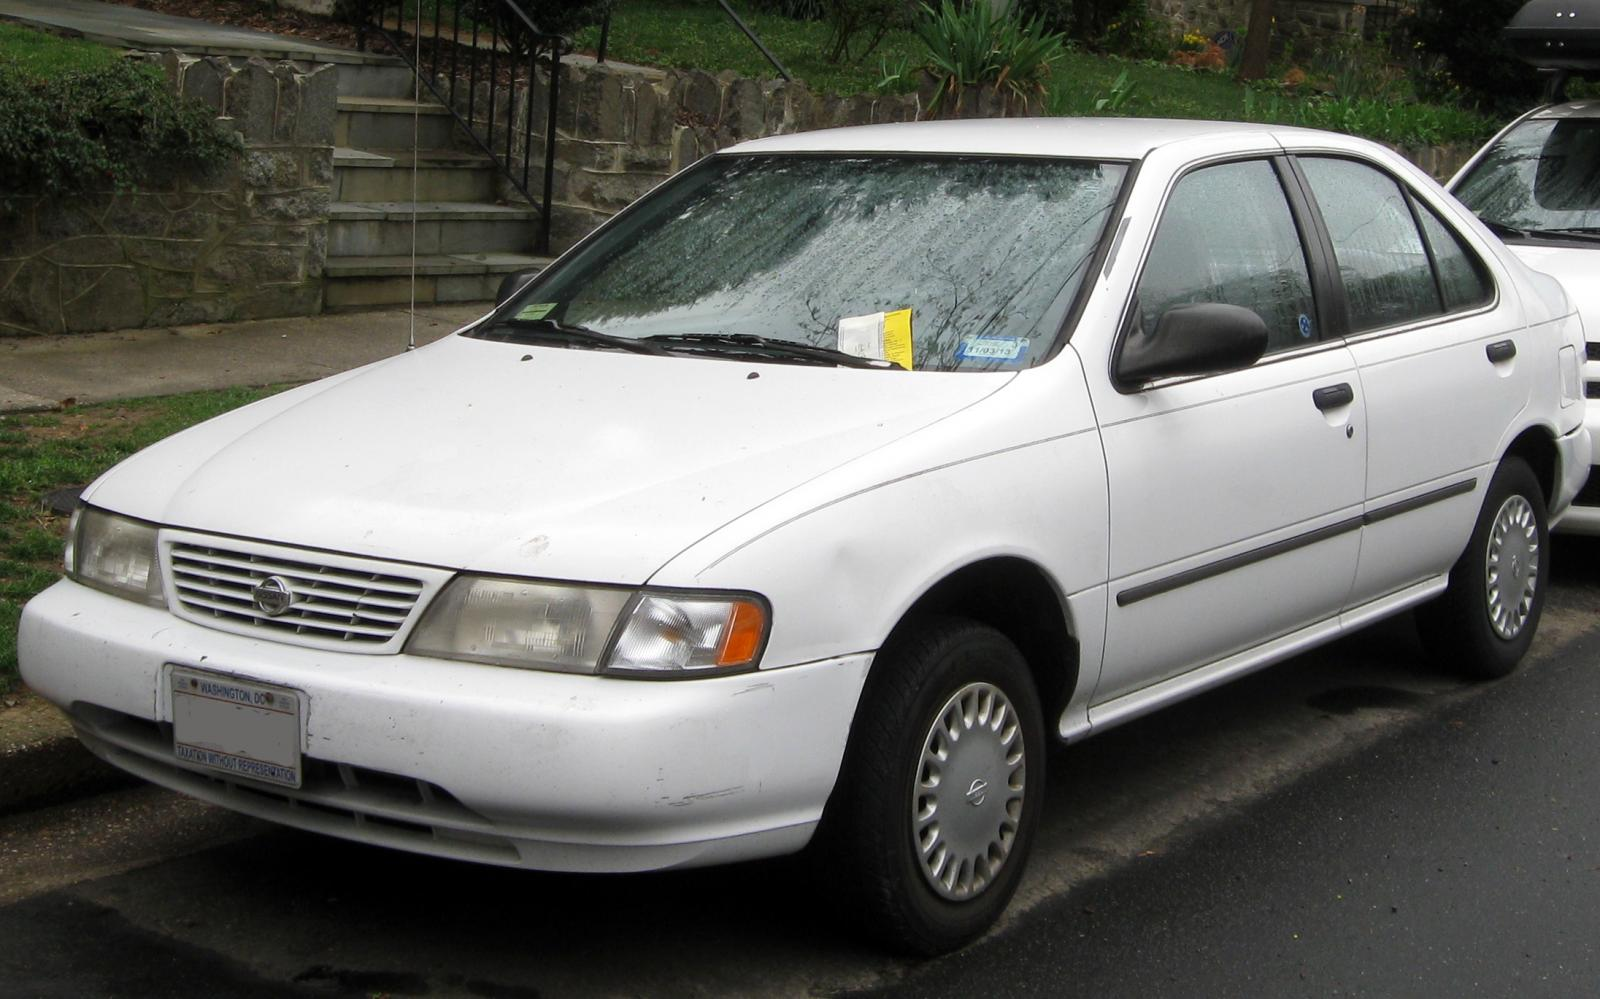 1990 Nissan Sentra - Information and photos - Zomb Drive